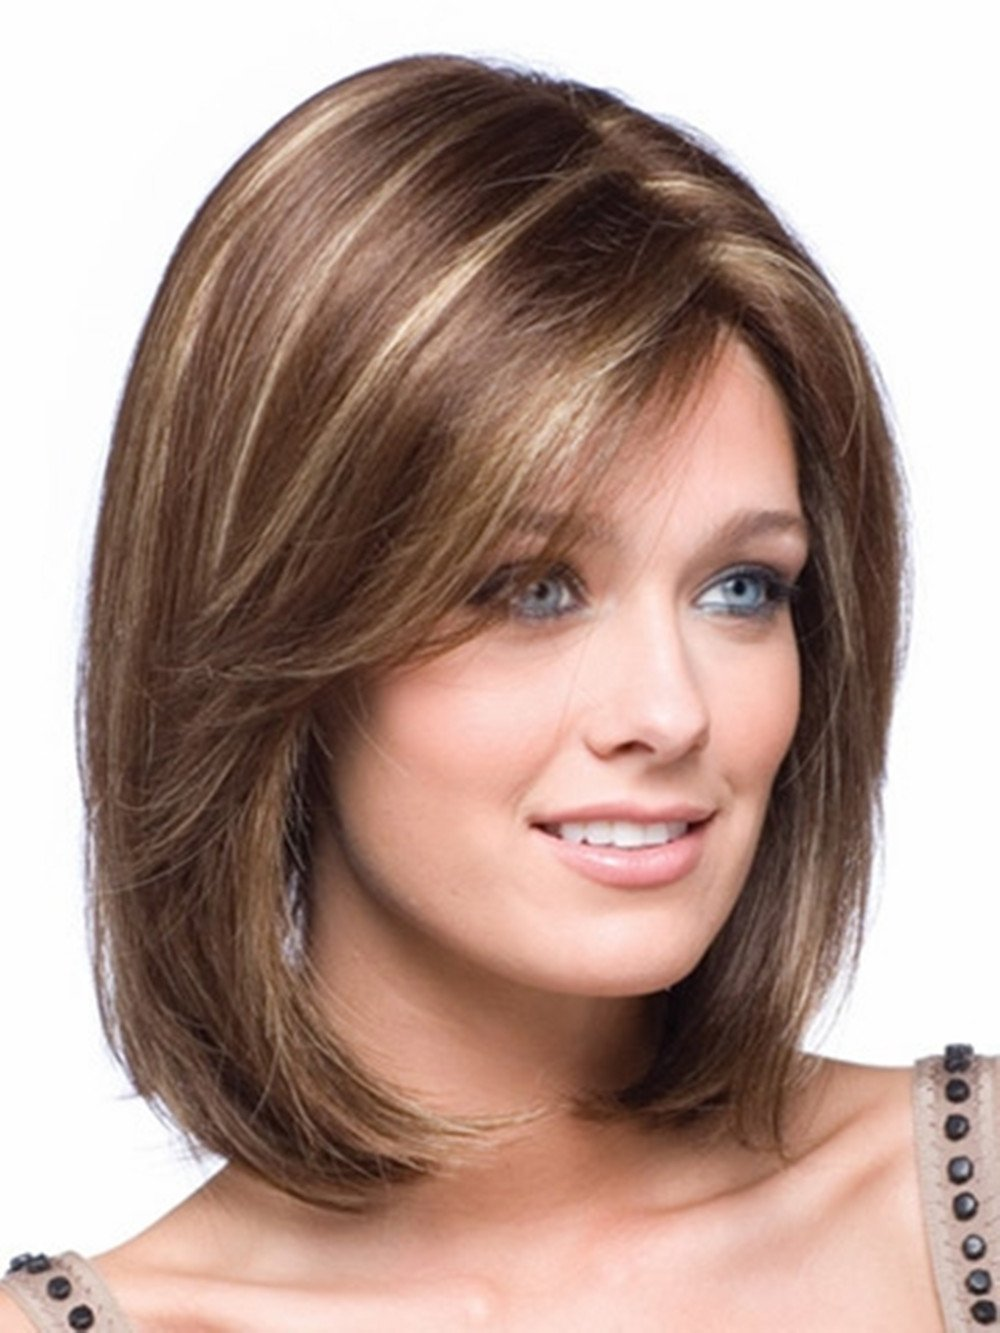 Short Wigs for Women Full Hair Wig Natural Looking Wigs with Wig Cap WIG034